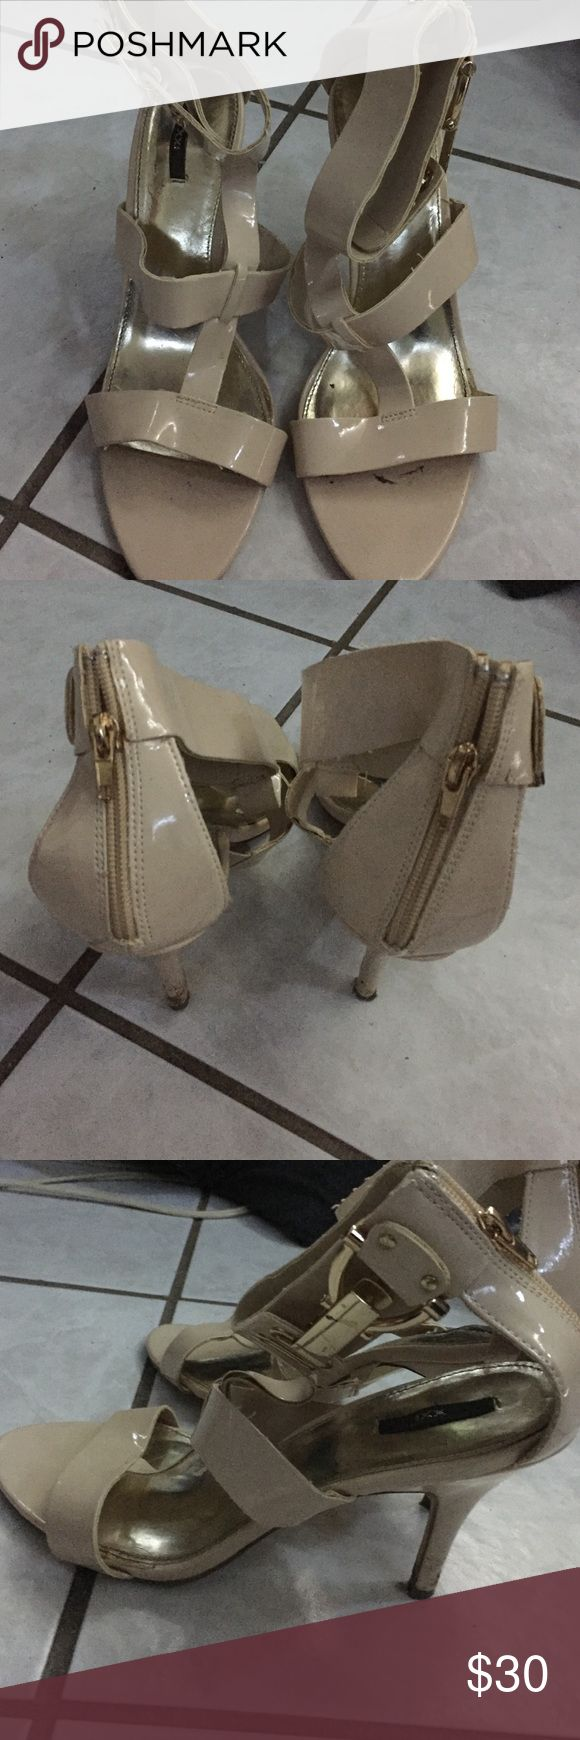 Pale cream Strappy heels Good condition. Only worn once. Zippers on back. Heel approximately 2 inches. Ask questions and make offers. Shoes Heels